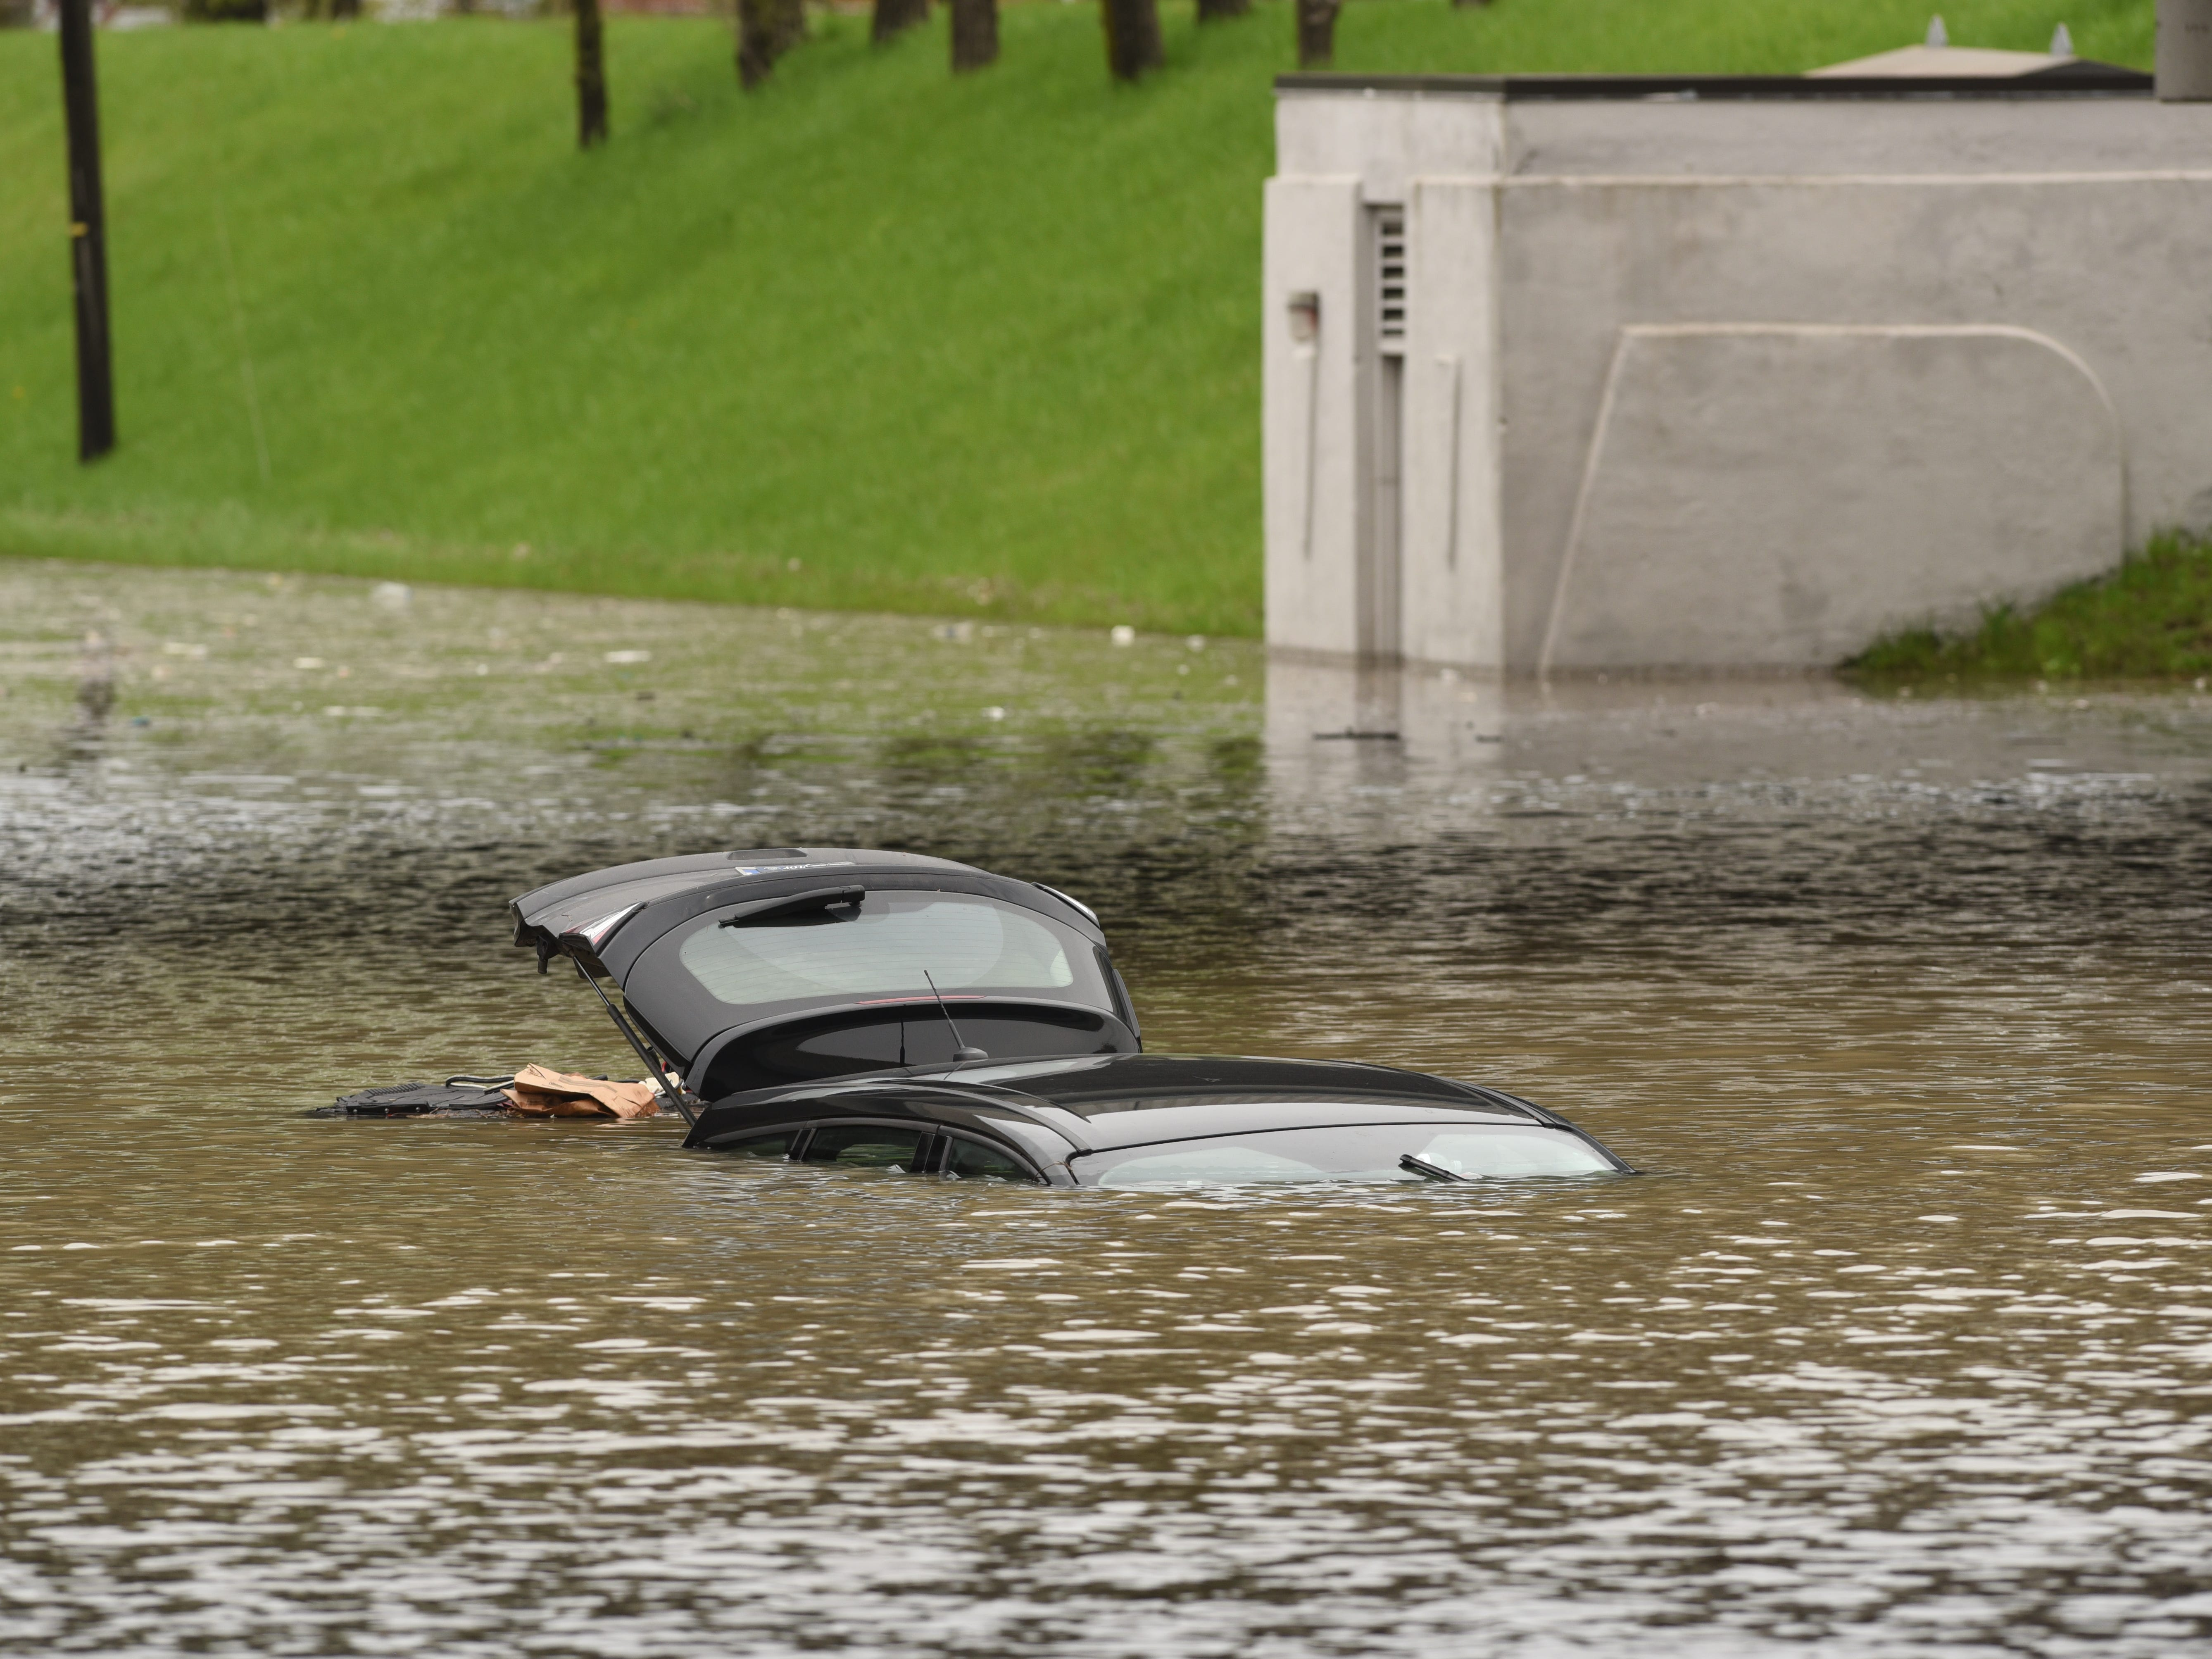 The roof and open hatch are the only visible signs of this submerged car at the Monroe Blvd underpass at the I-94 in Taylor.